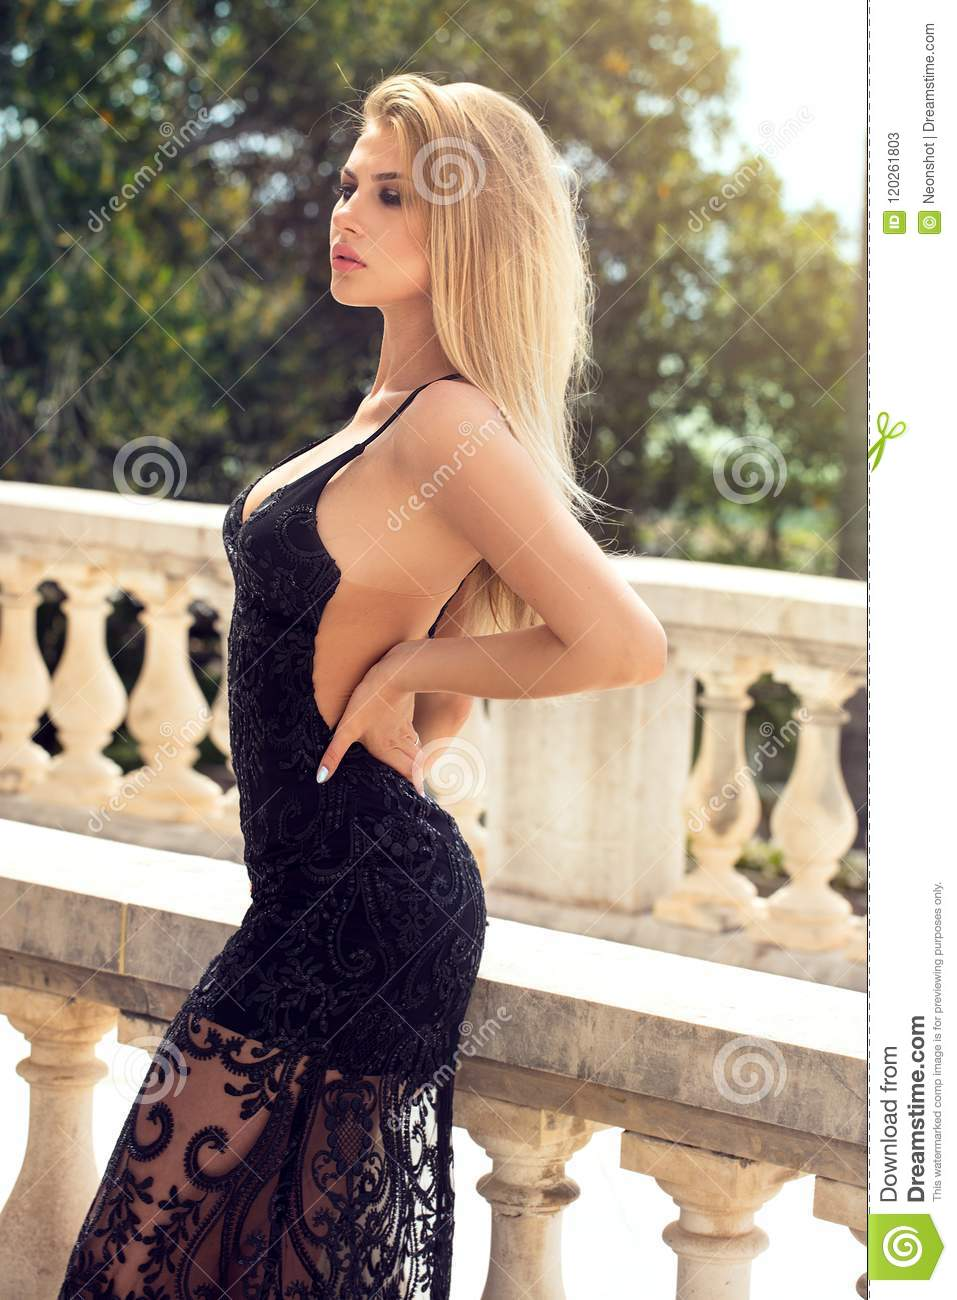 Blonde sexy woman photo words